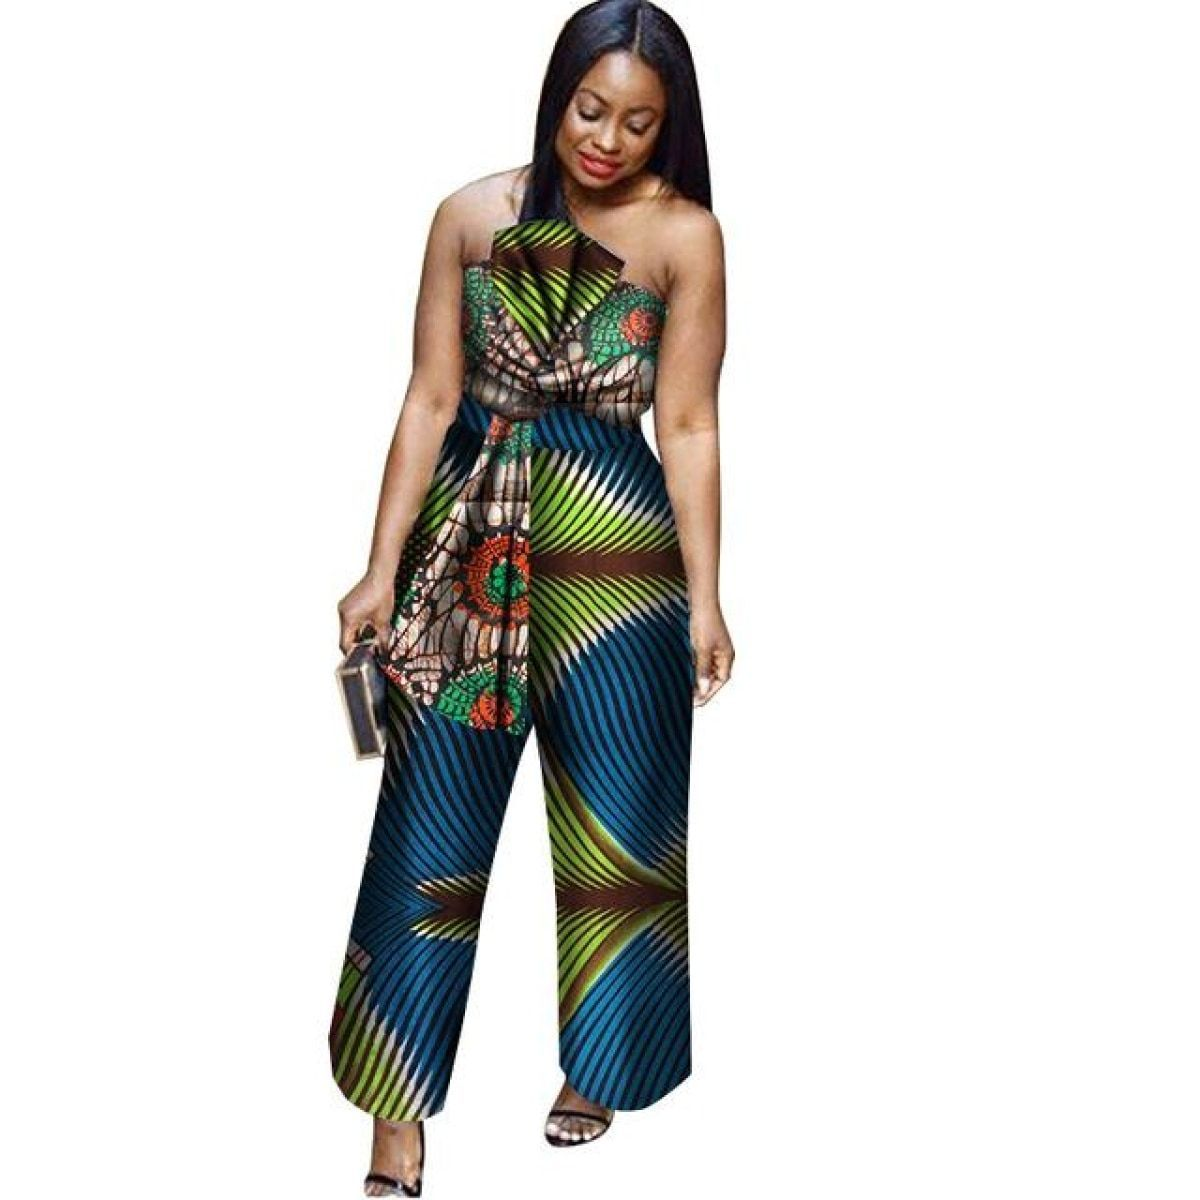 737d98a8b64 African Cotton Wax Print Romper Sexy Jumpsuit For Women Dashiki Batik